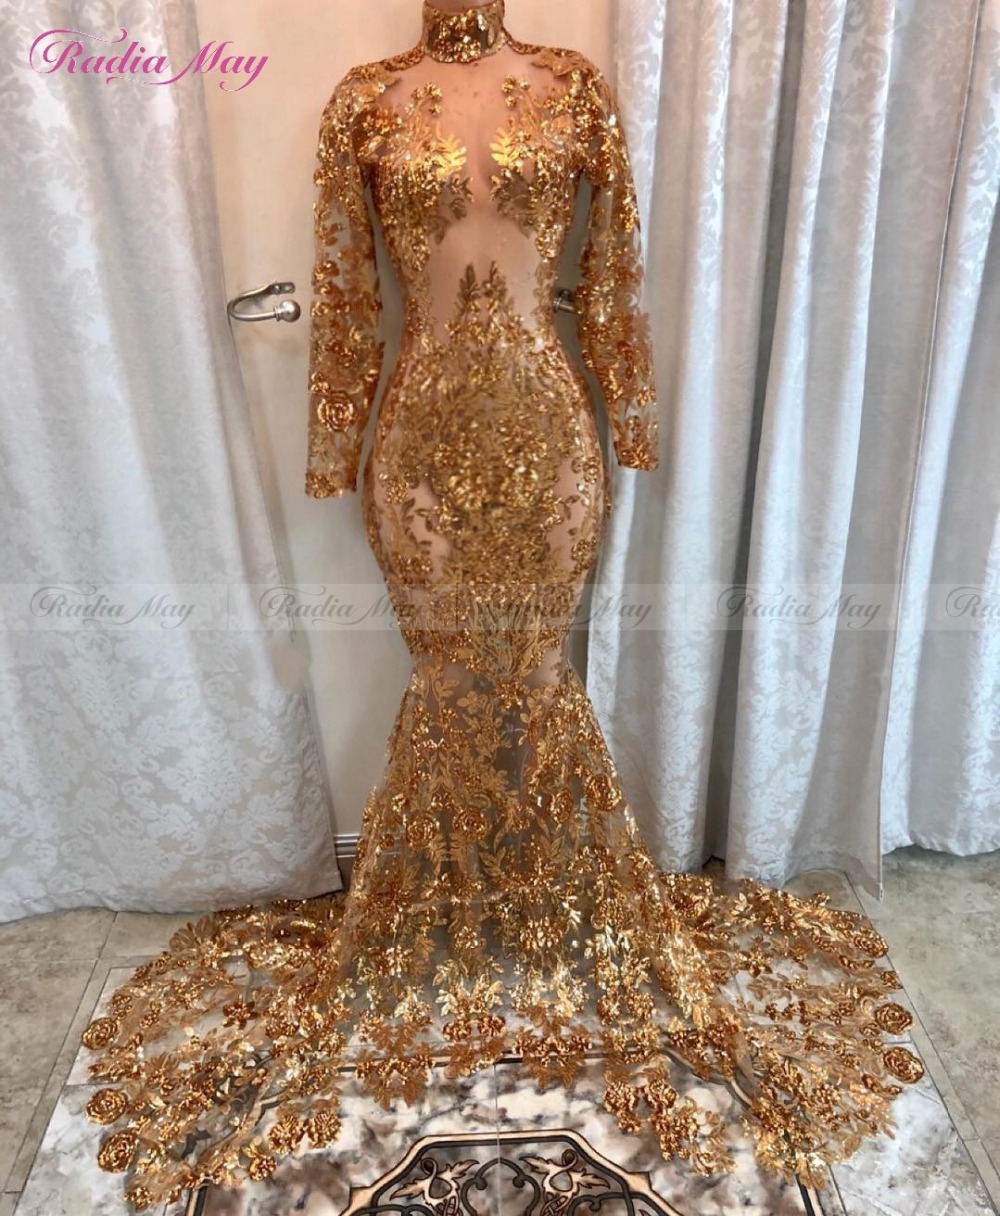 Sparkly Gold Sequins Mermaid Long Sleeves Prom Dresses Black Girls Sheer High Neck Court Train African Formal Evening Dress 2020